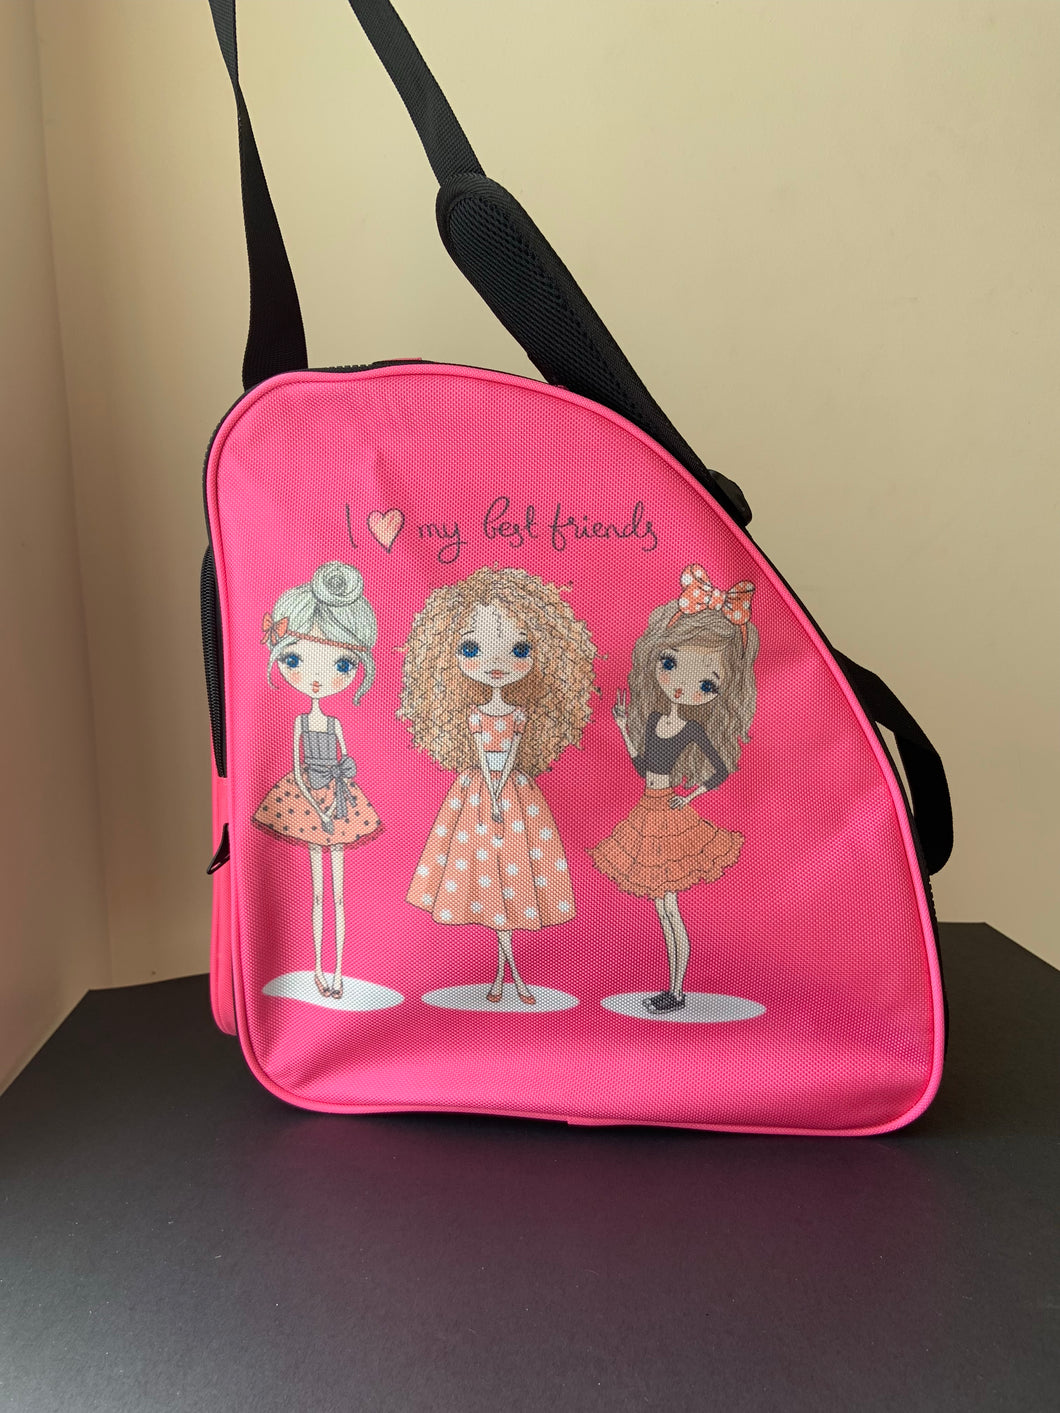 CUBE Shoulder Bag Pink with best friends.